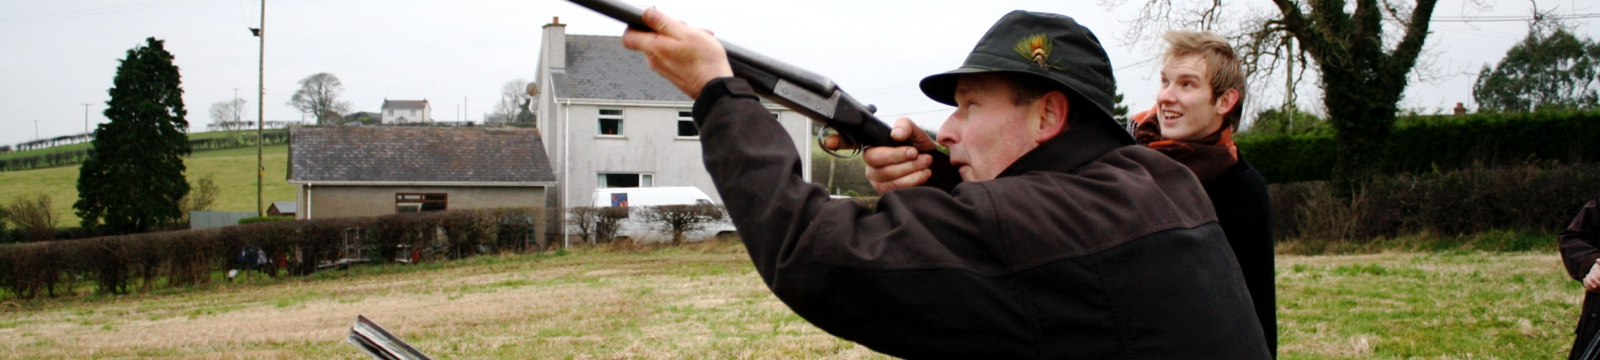 Clay Pigeon Shooting in Manchester